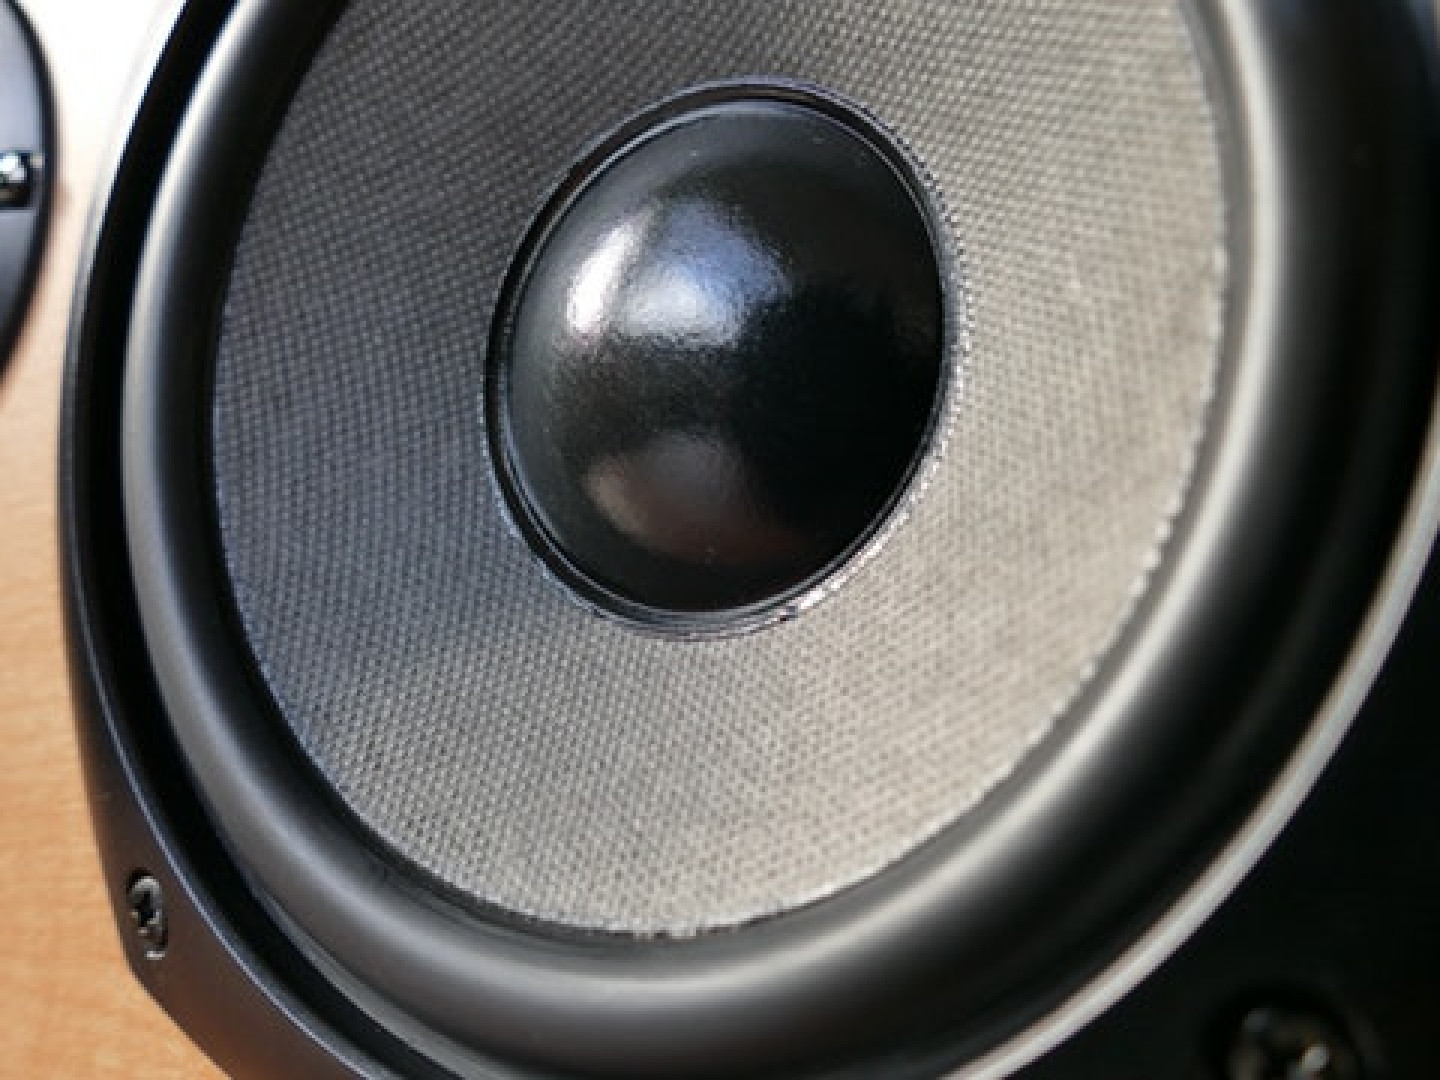 Surround sound installation and services in Boise, ID & Surrounding Areas